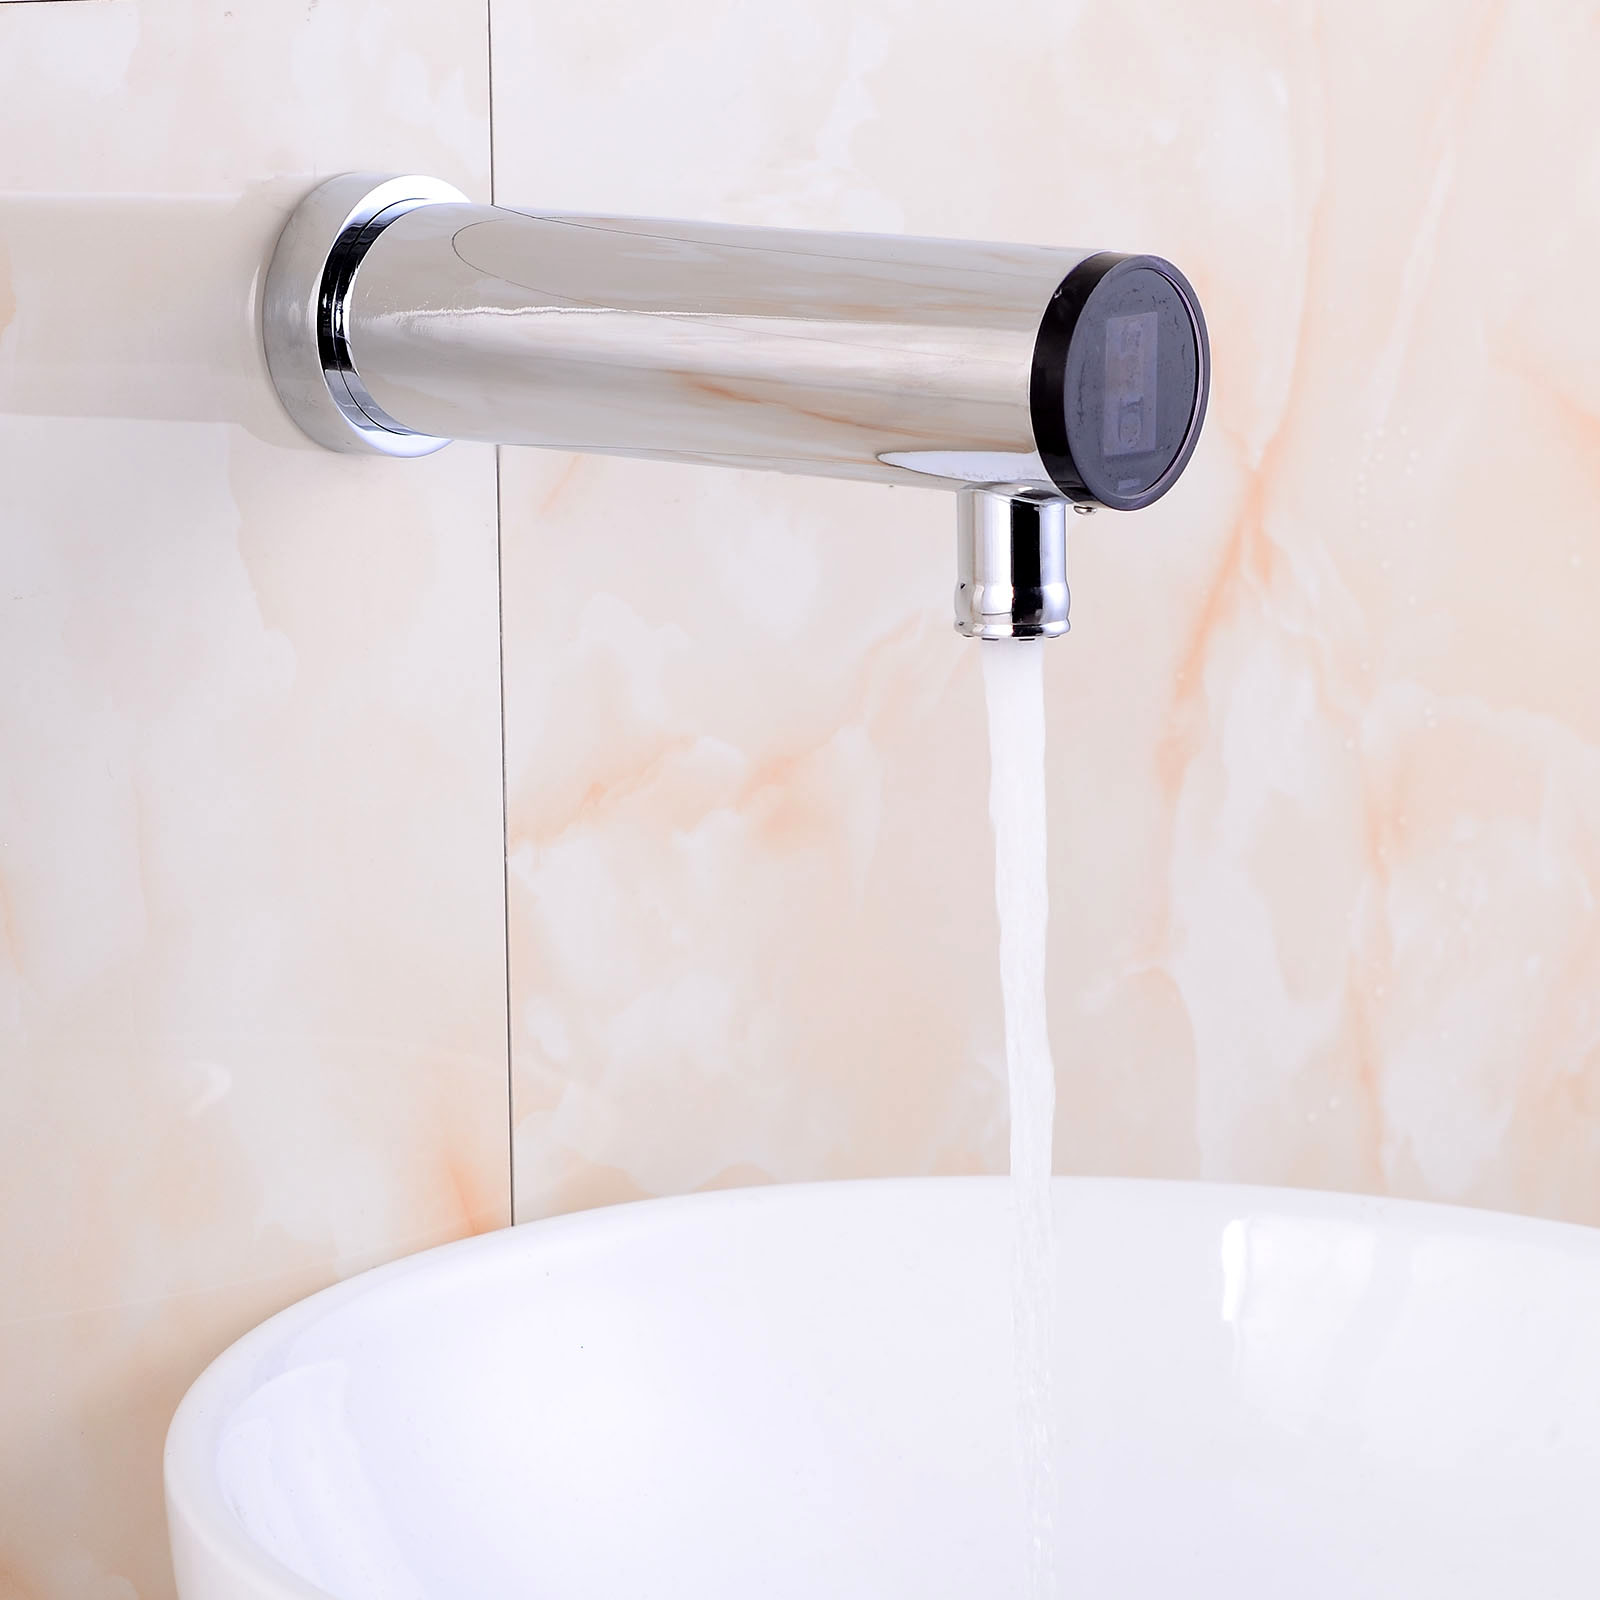 ФОТО Automatic Sensor Faucet Bathroom Sense Faucet Hand Touchless Sensor Tap Hot &Cold Water Mixer Faucet Brass Chrome Wall Mounted